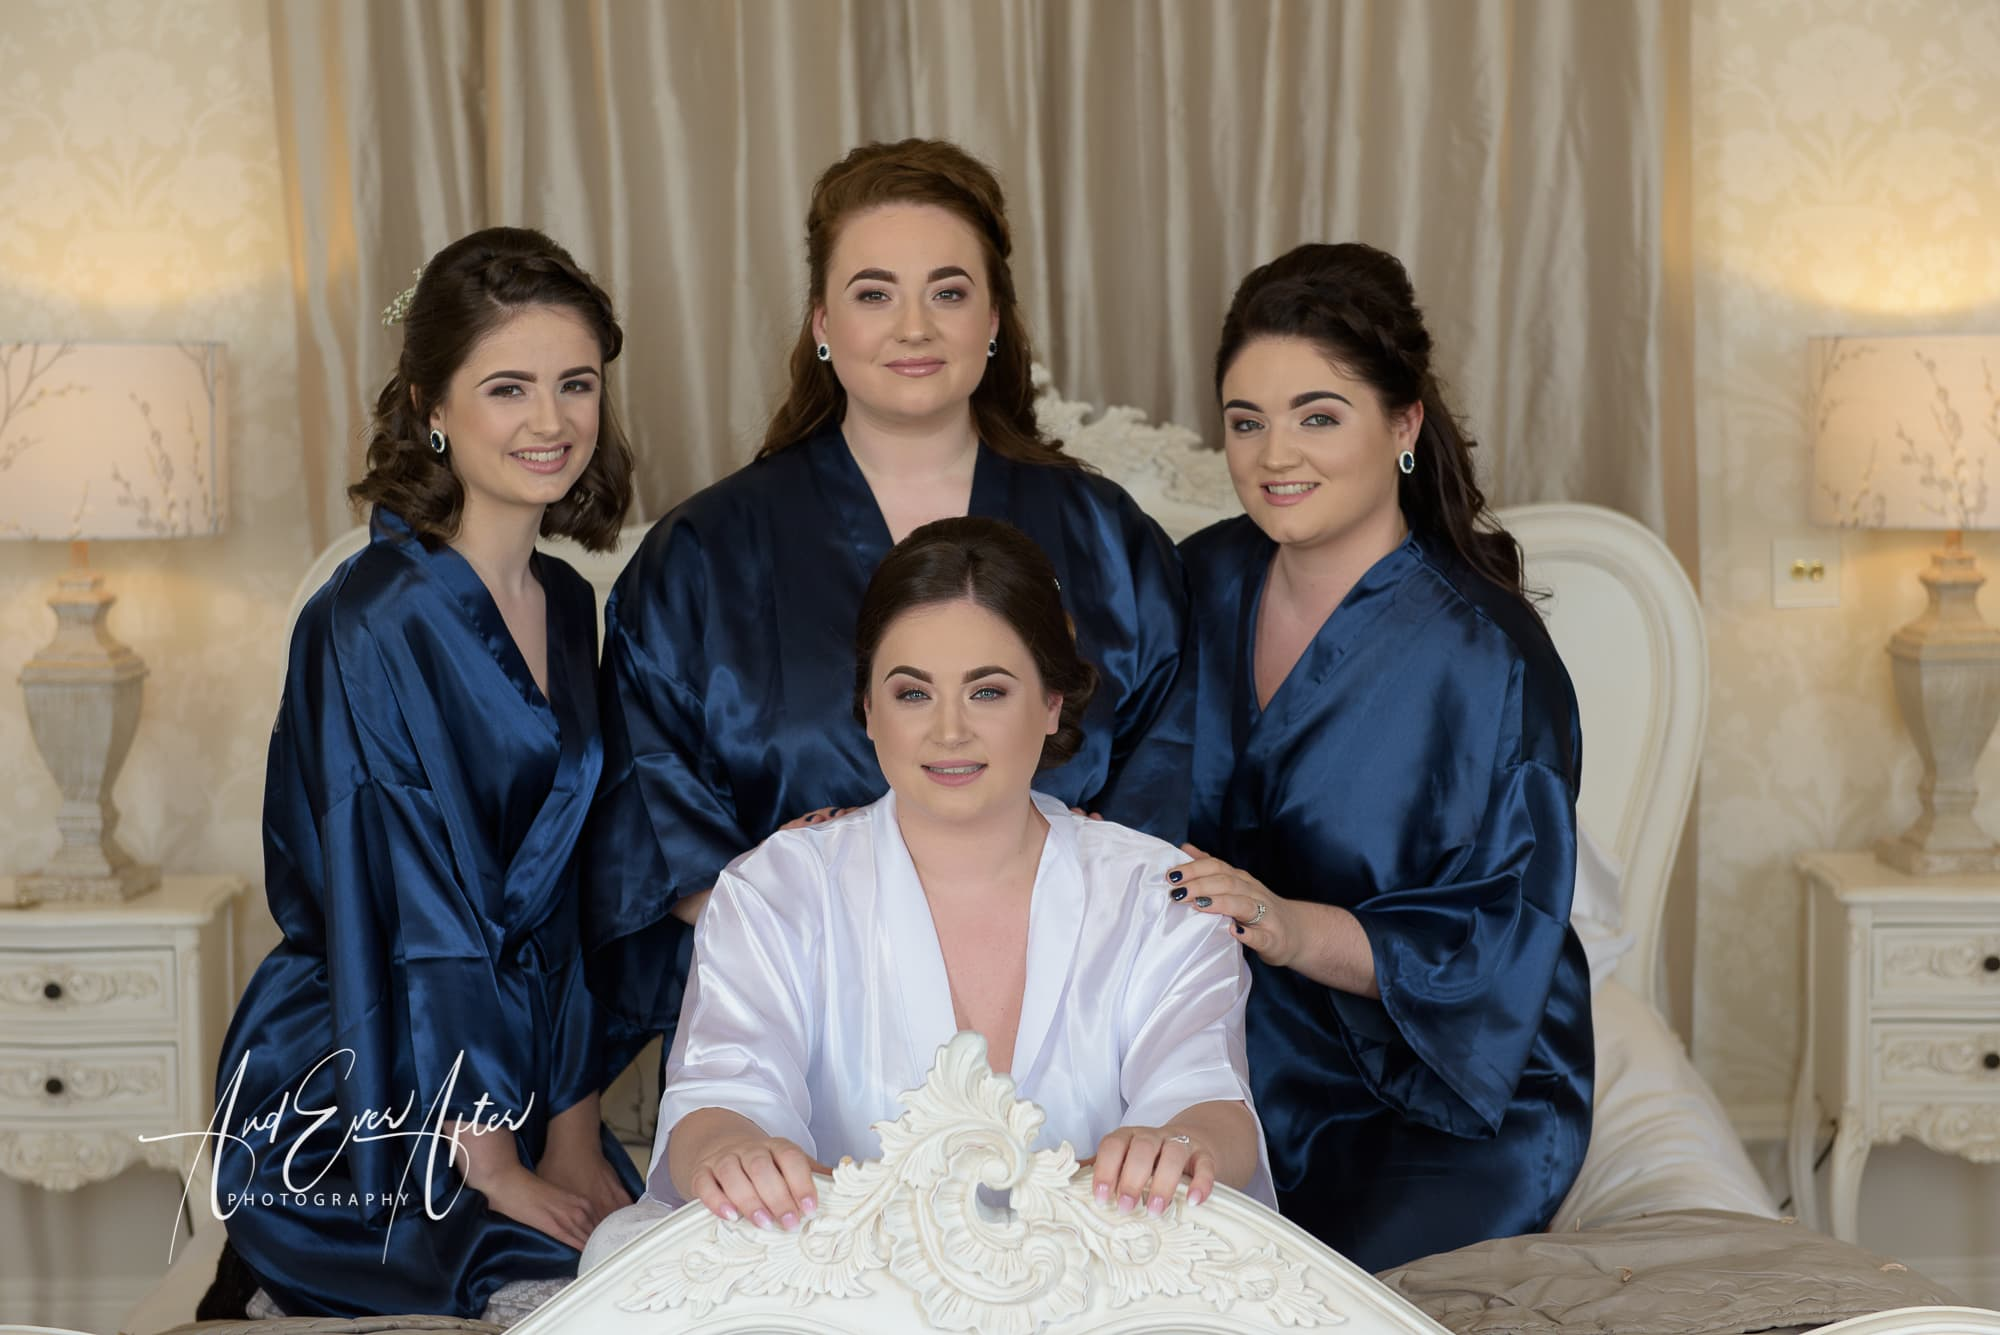 Bride, bridesmaids, wedding photography